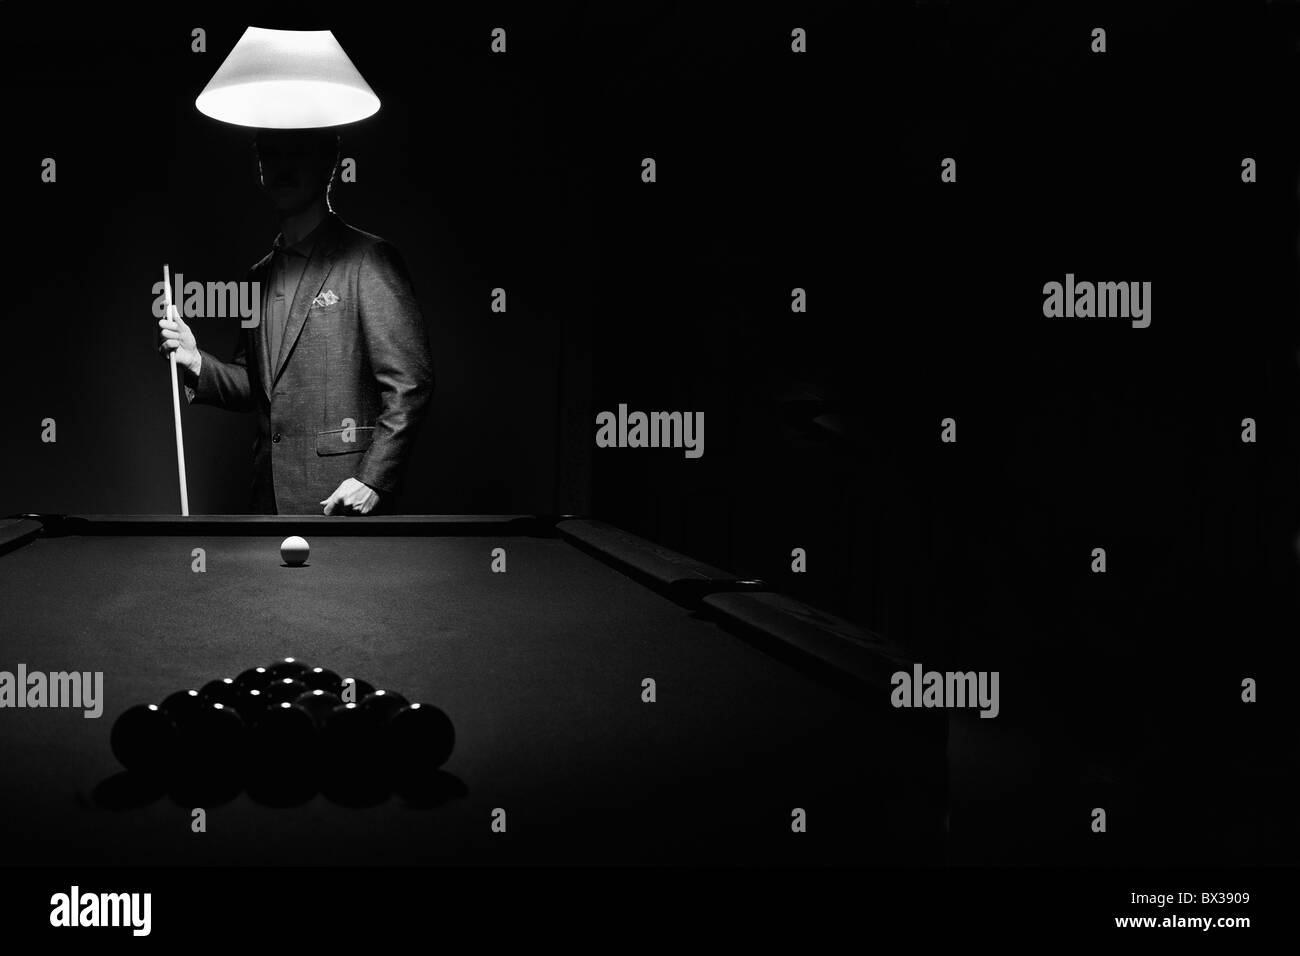 Mystery Pool Player Behind Rack Of Billiard Balls - Stock Image